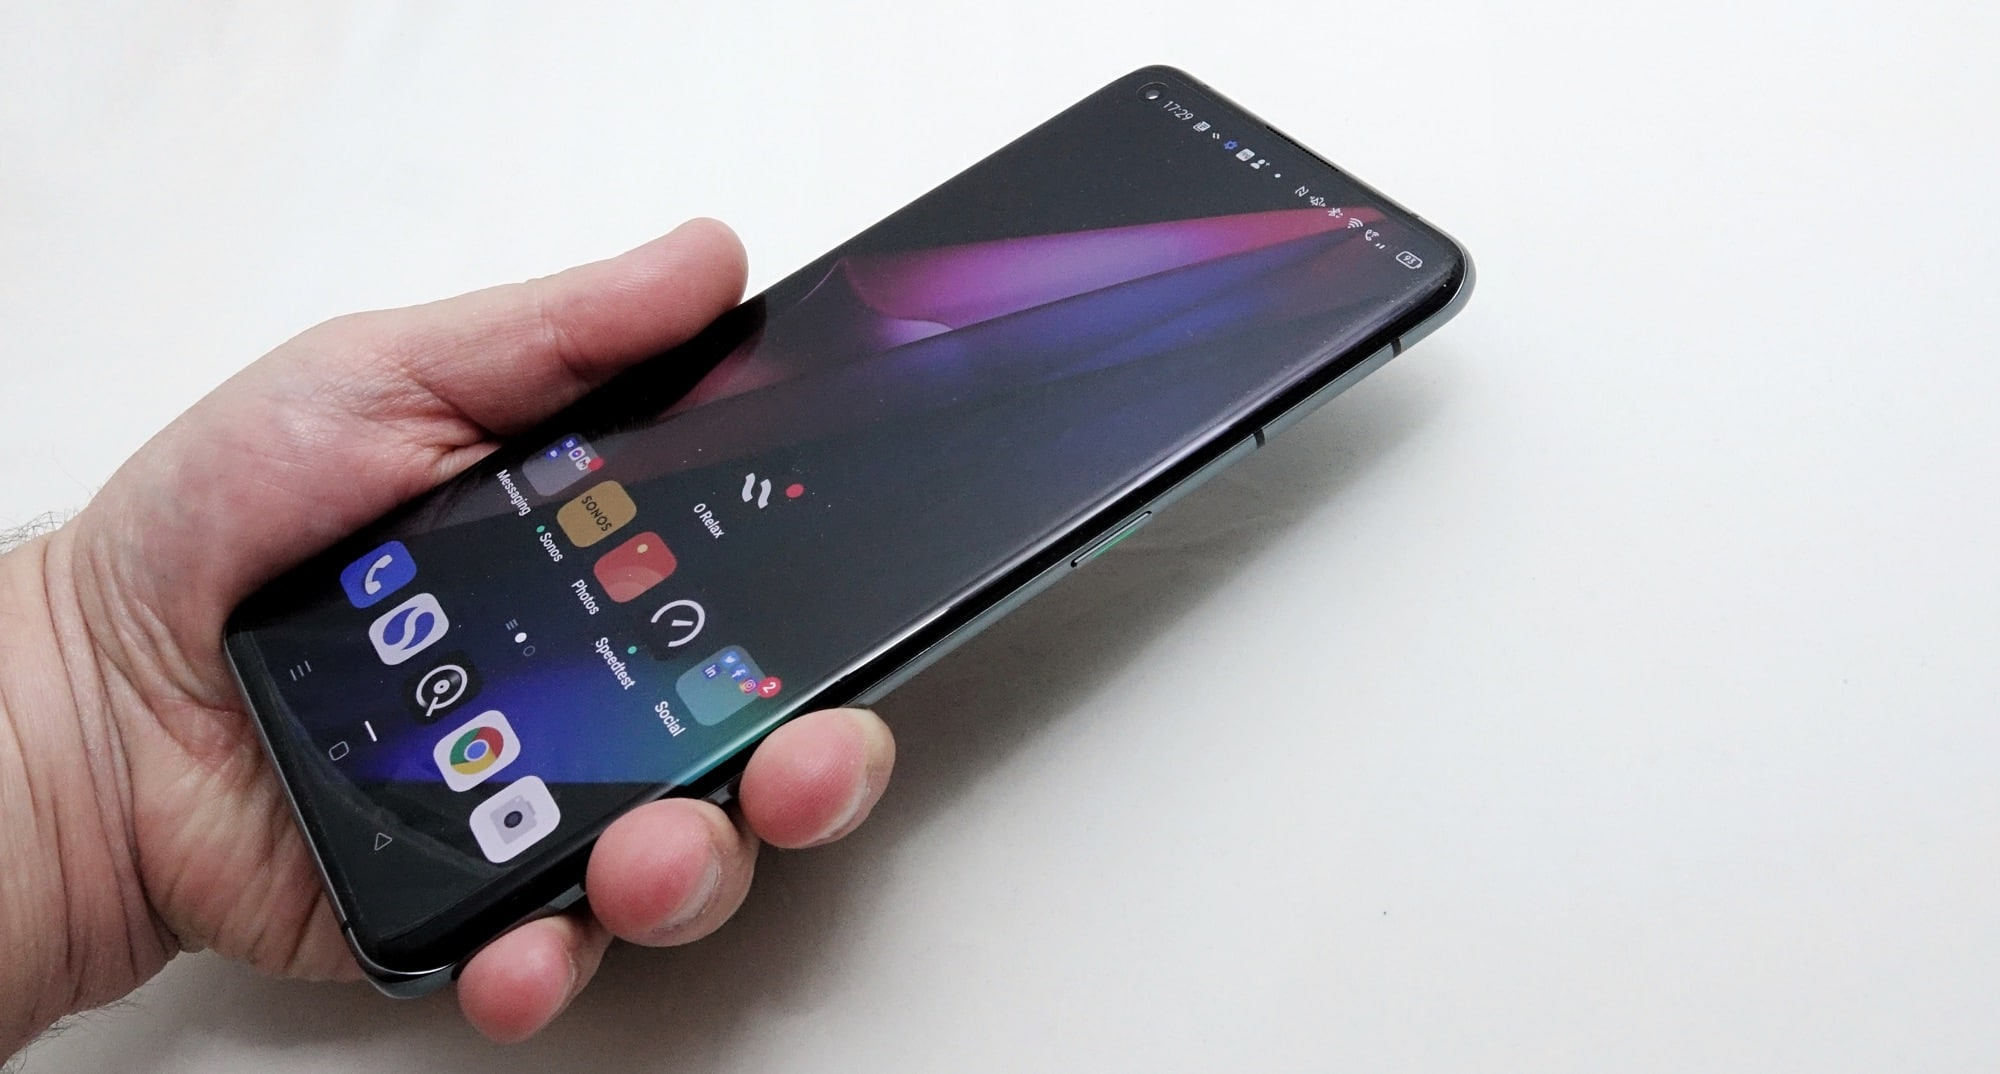 Holding the Oppo Find X3 Pro